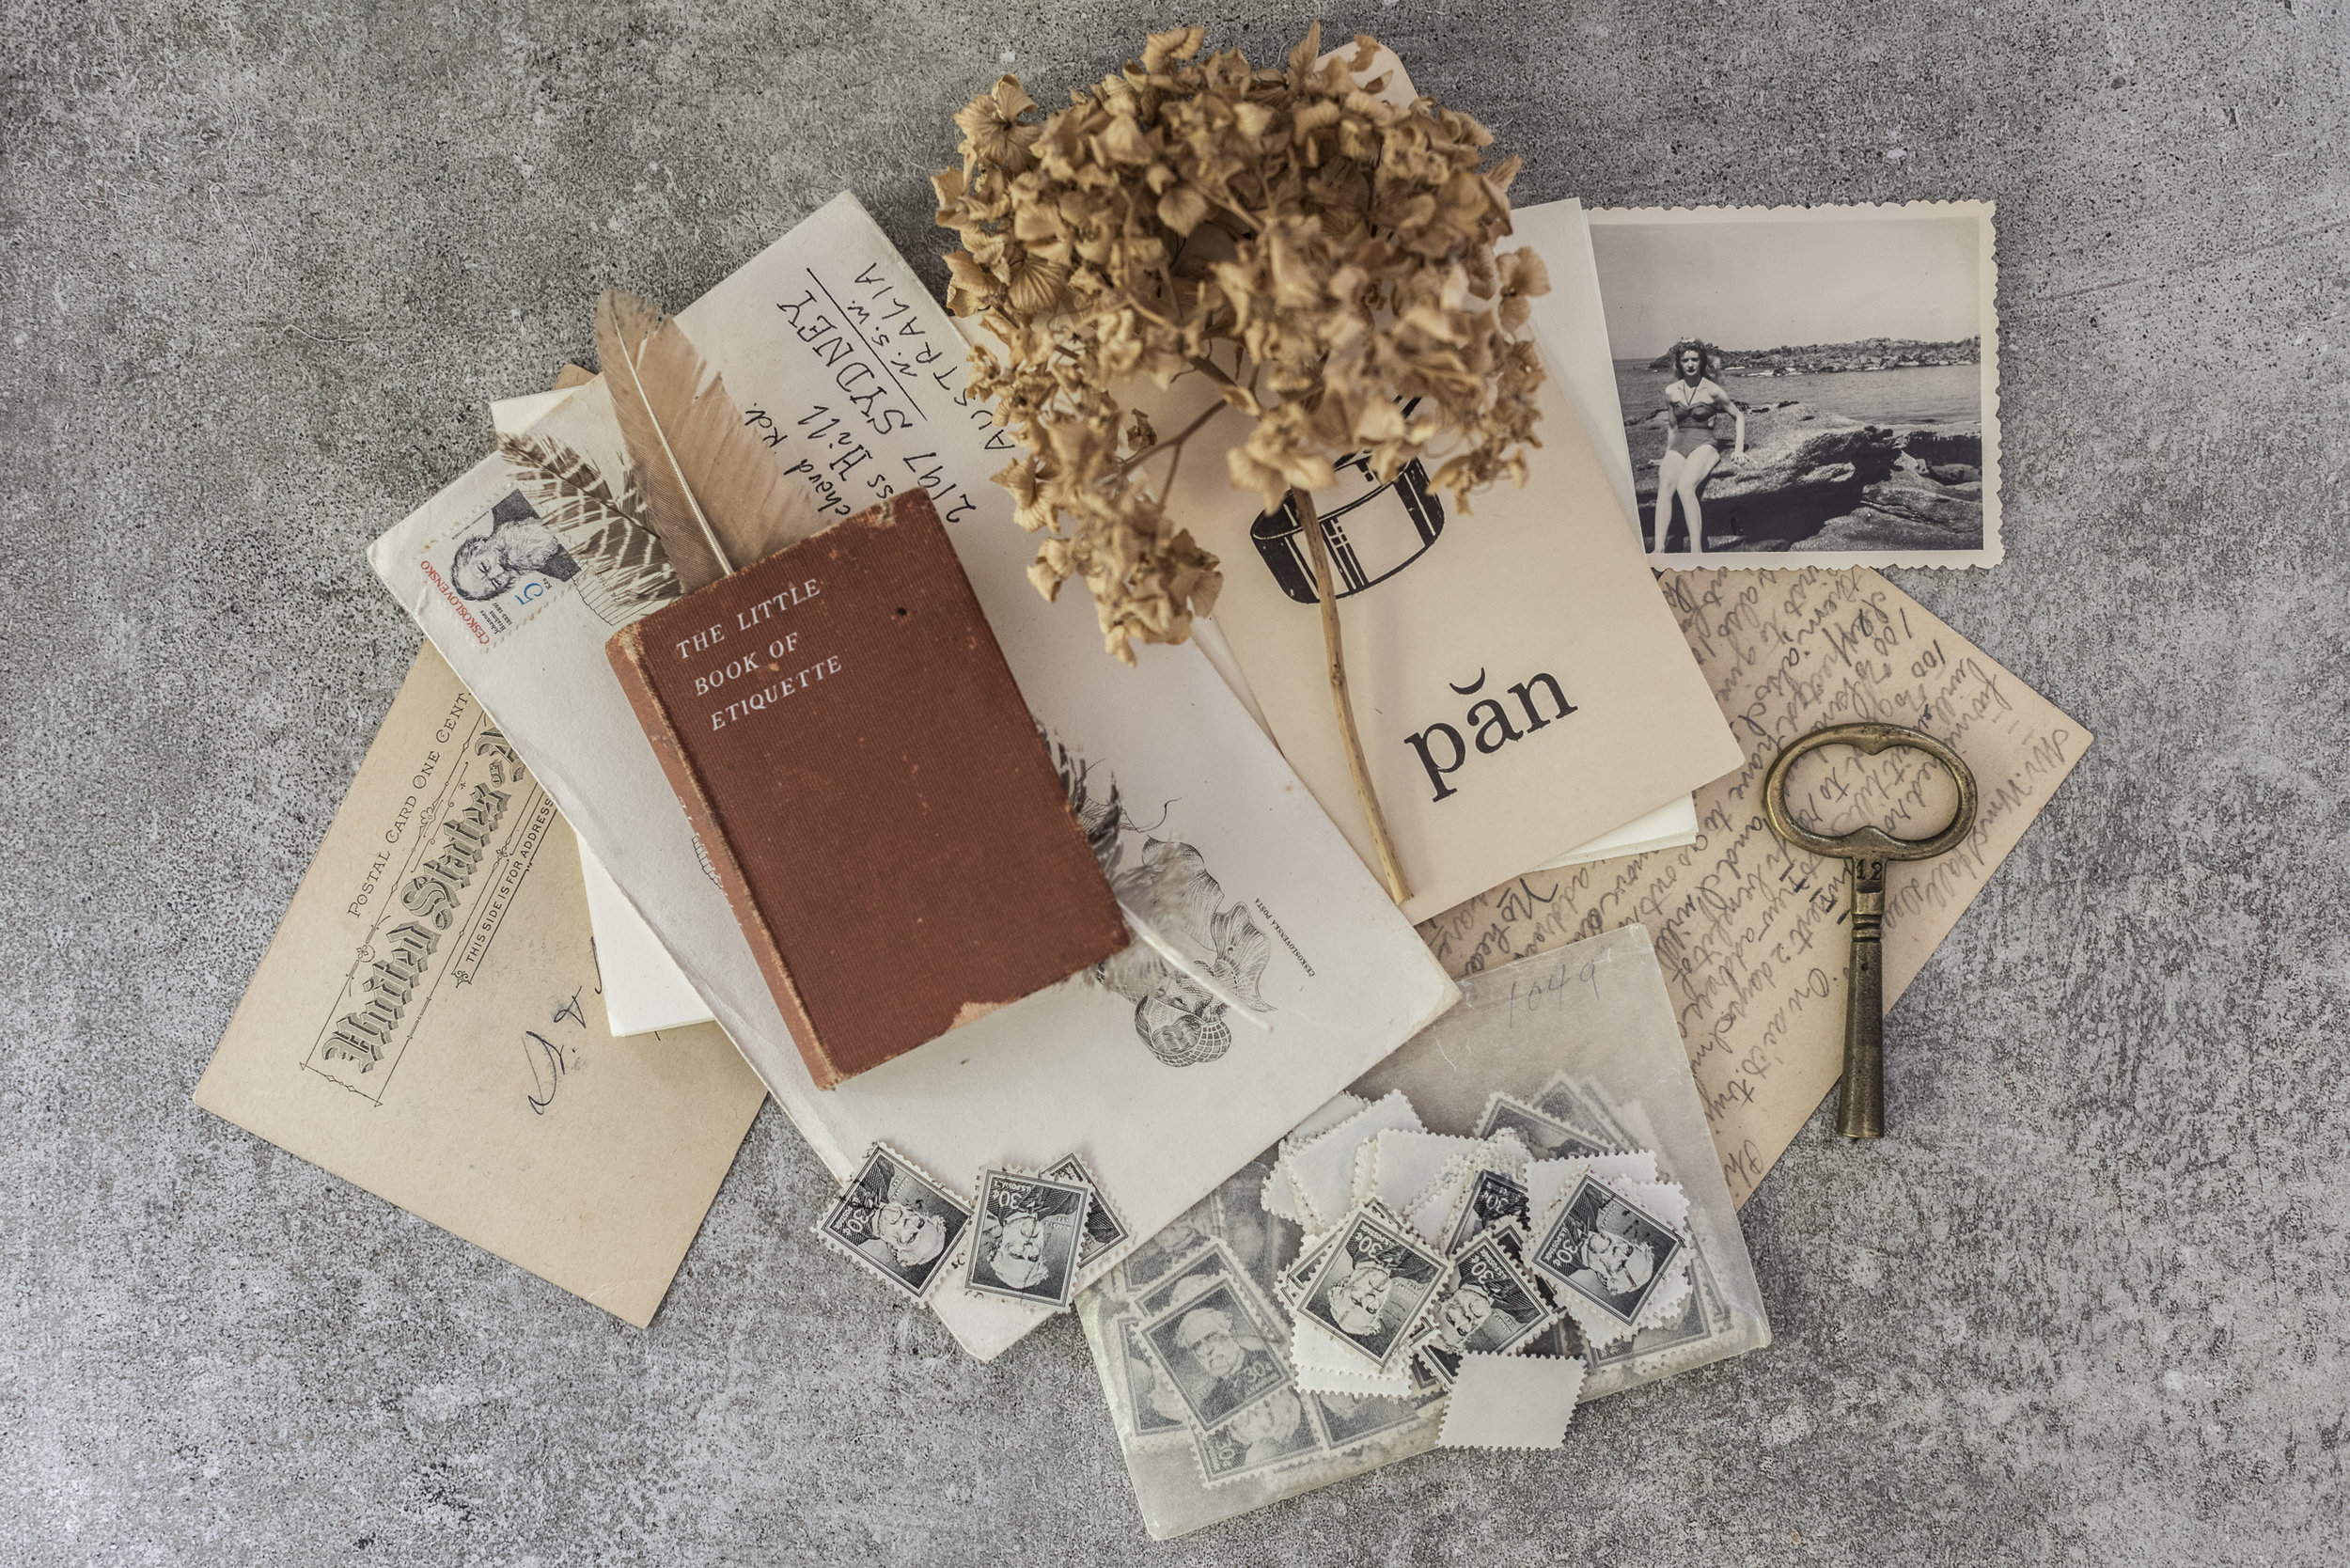 a collectors compendium #2 - Bring your paper treasures (tickets, letters photographs, stamps etc) and make a stunning pocket accordion book in beautiful archival paper - perfect as a display or as a safe heirloom keepsake to tuck away.Sunday 21 July 2019. The Lost and Found Dept, Hunters Hill.